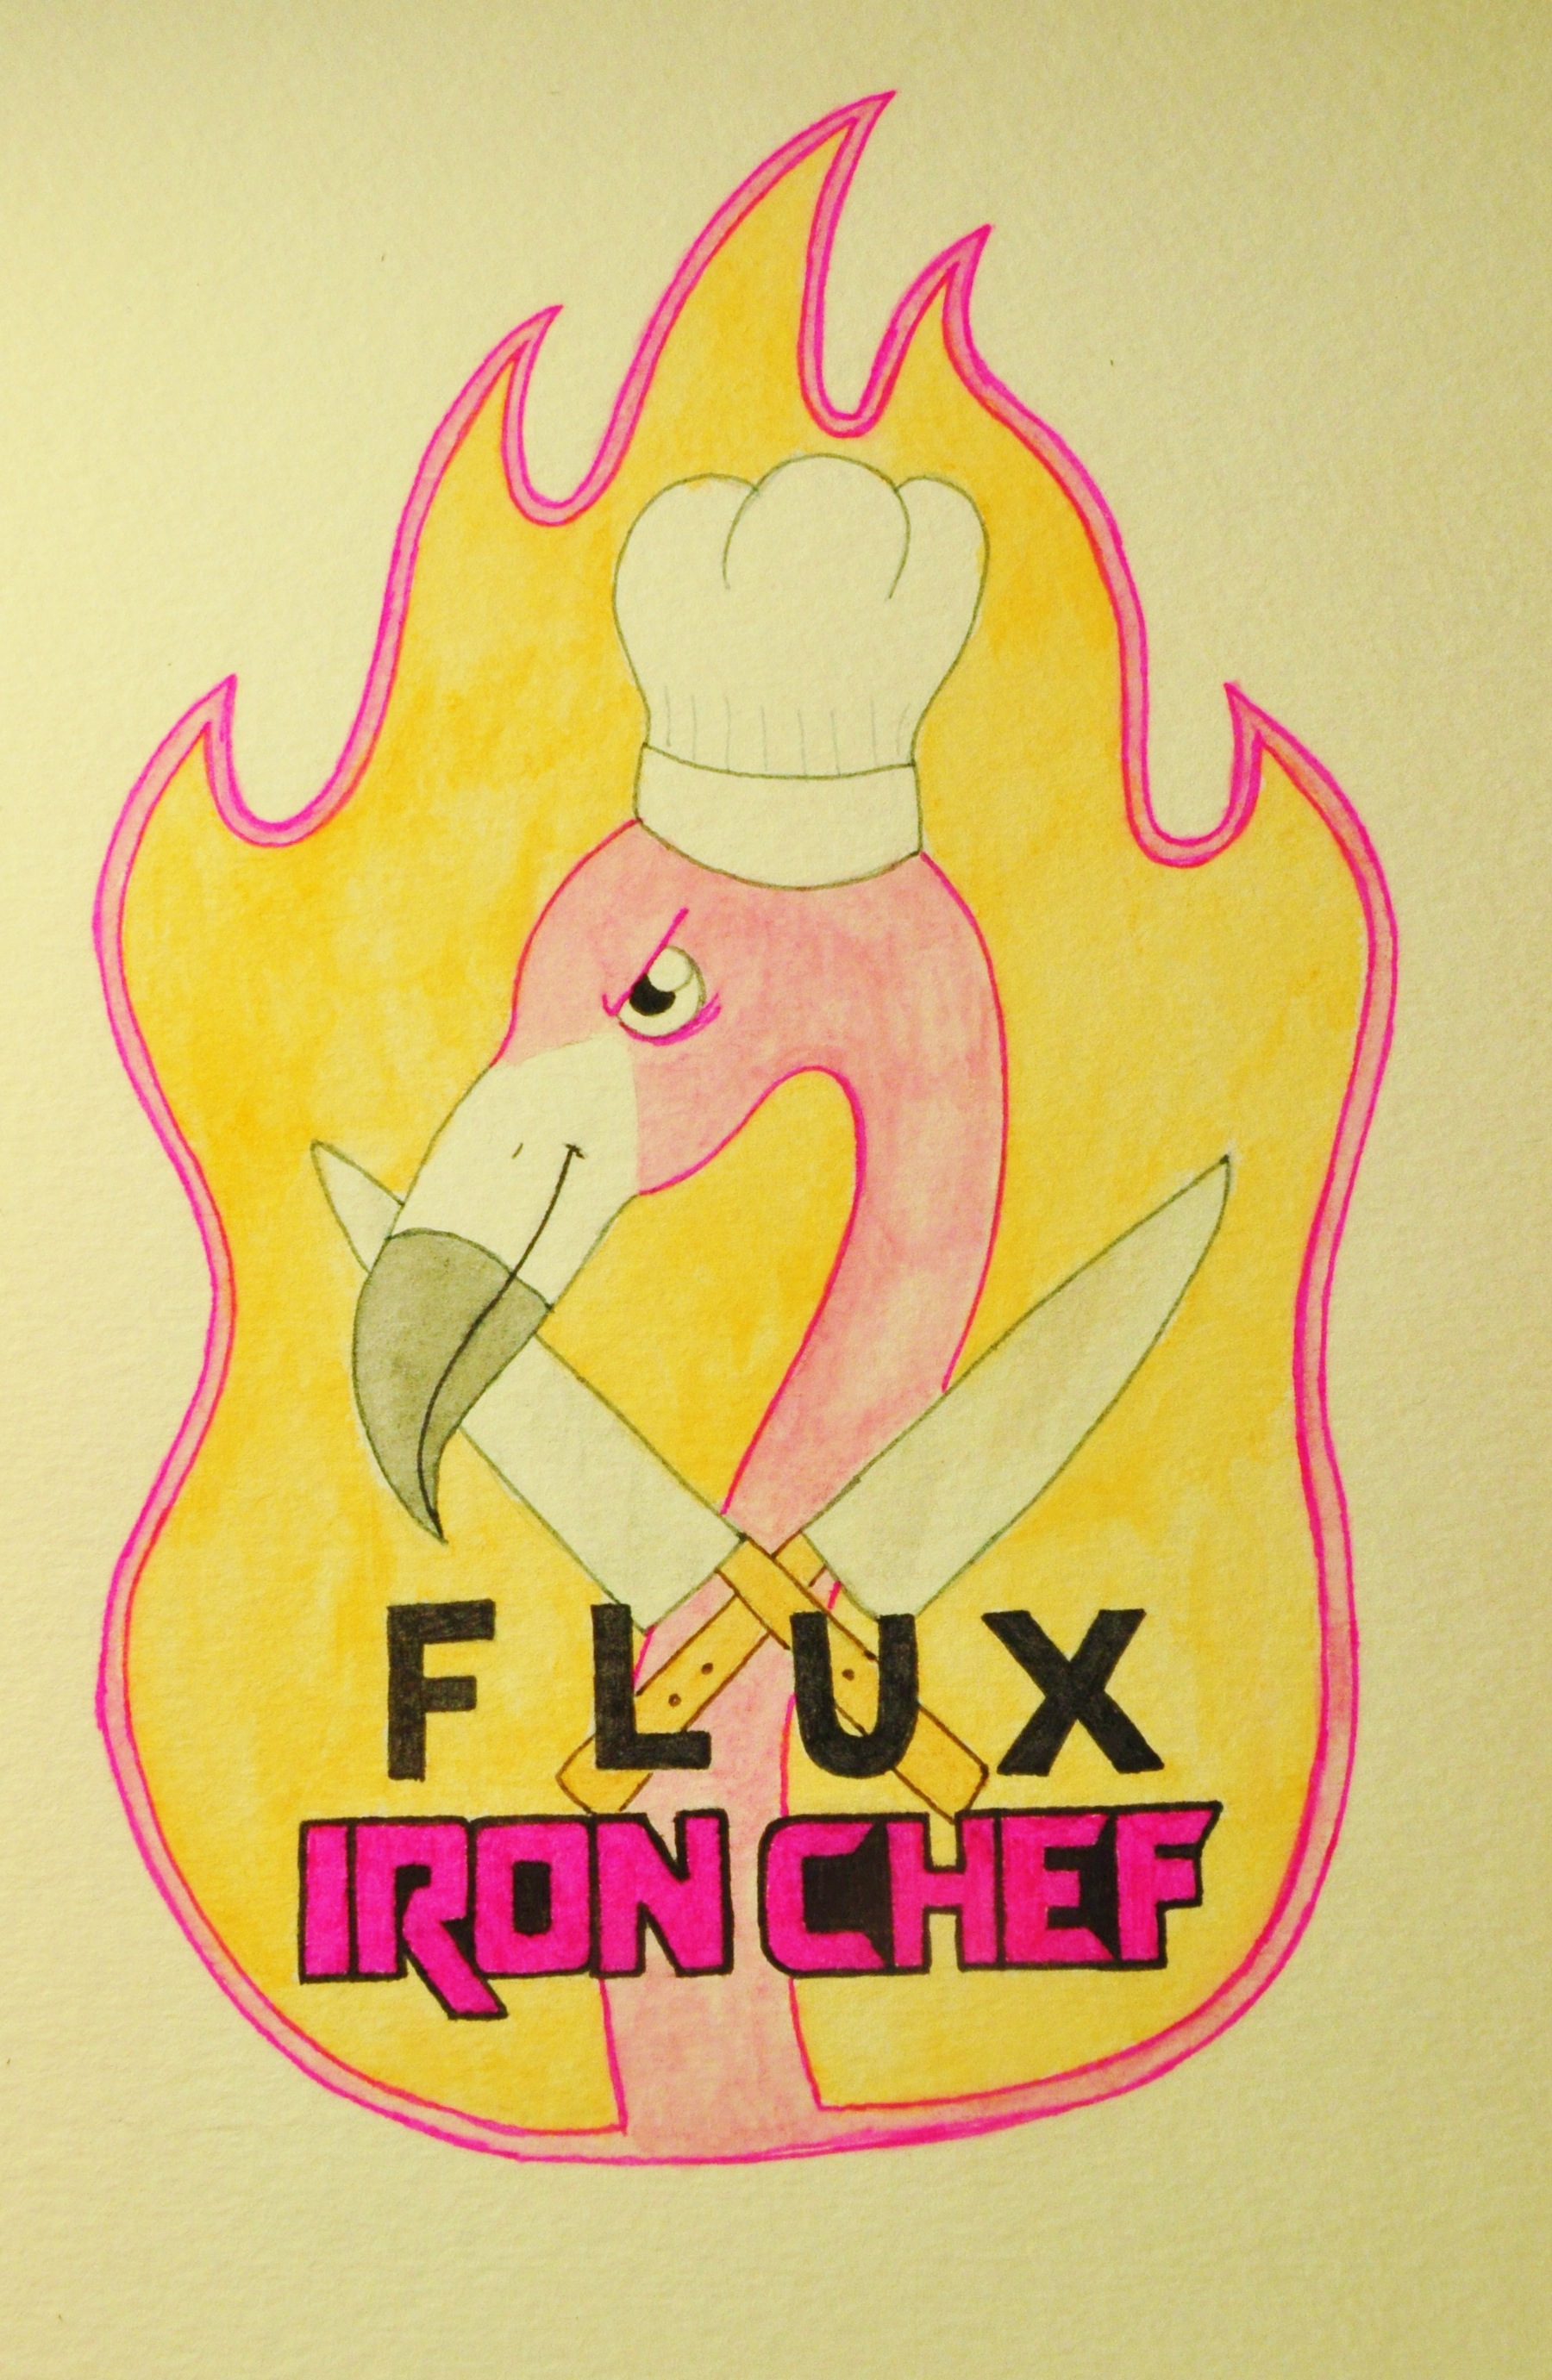 Iron Chef Flux